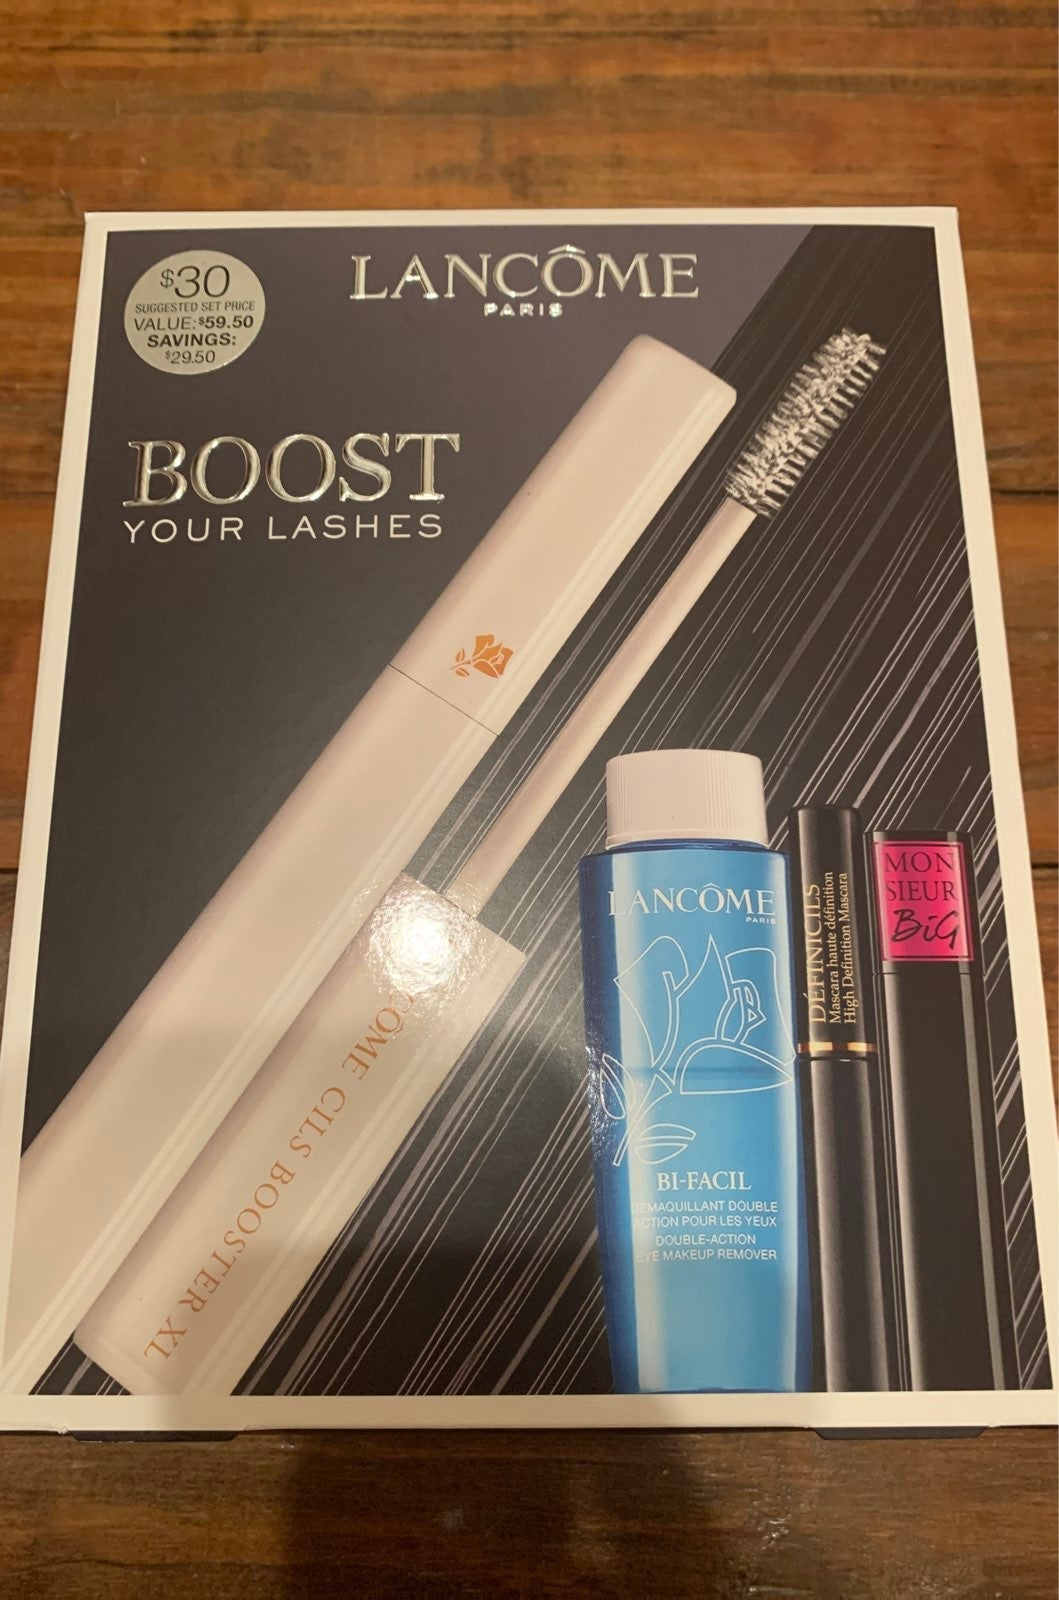 Lancome Boost Your Lashes kit